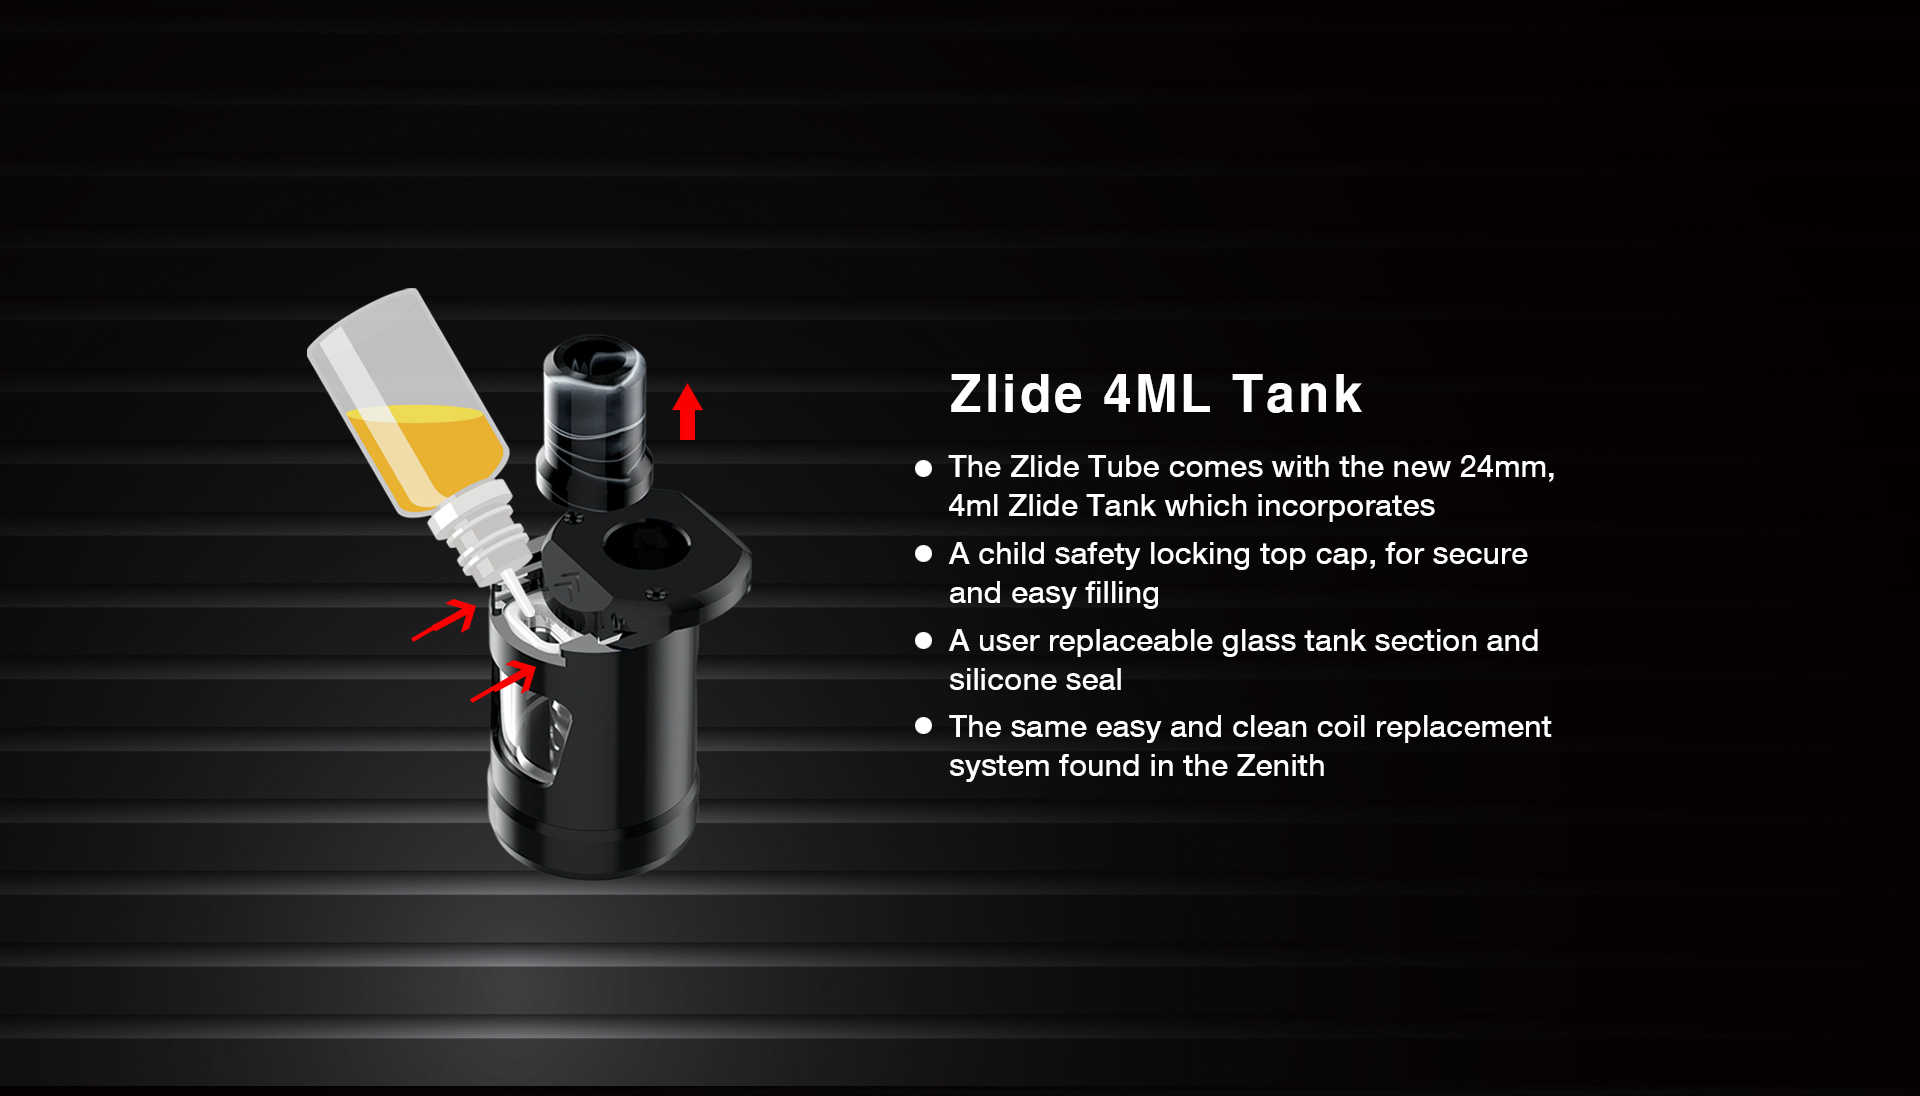 Innokin zlide Tube 4ml tank